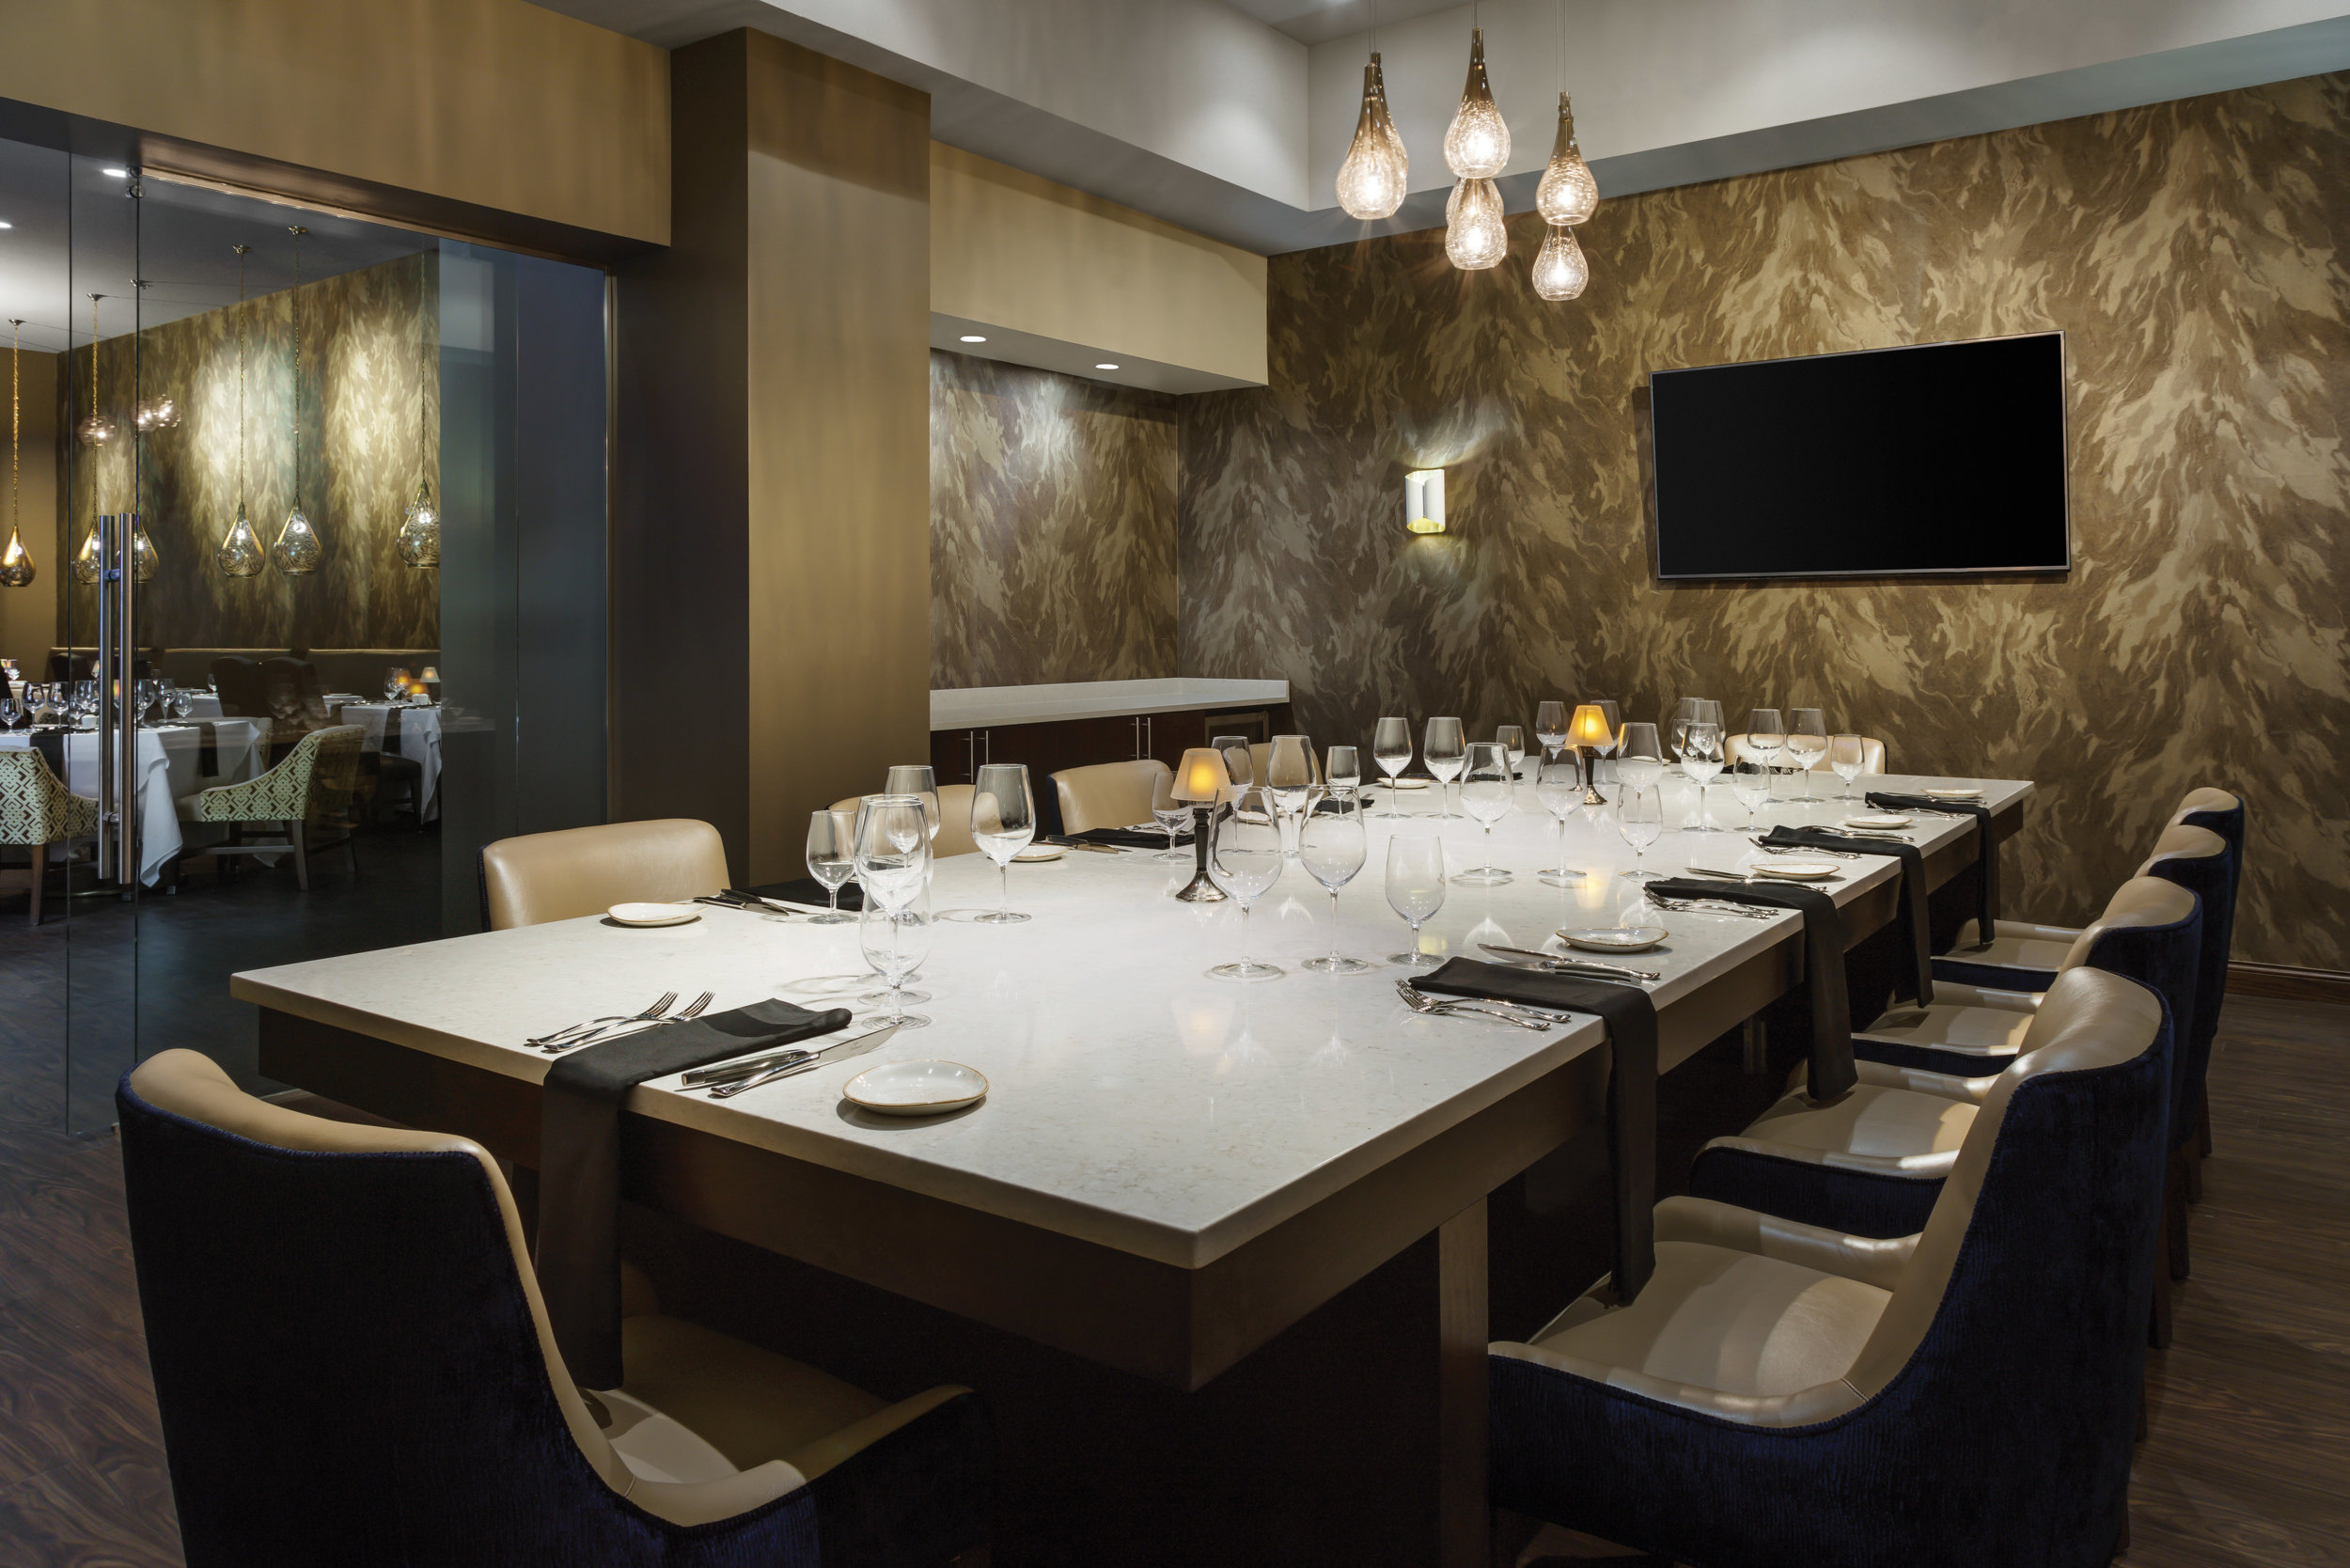 Seared Fine Dining Private Dining Room for intimate get-to-gethers.